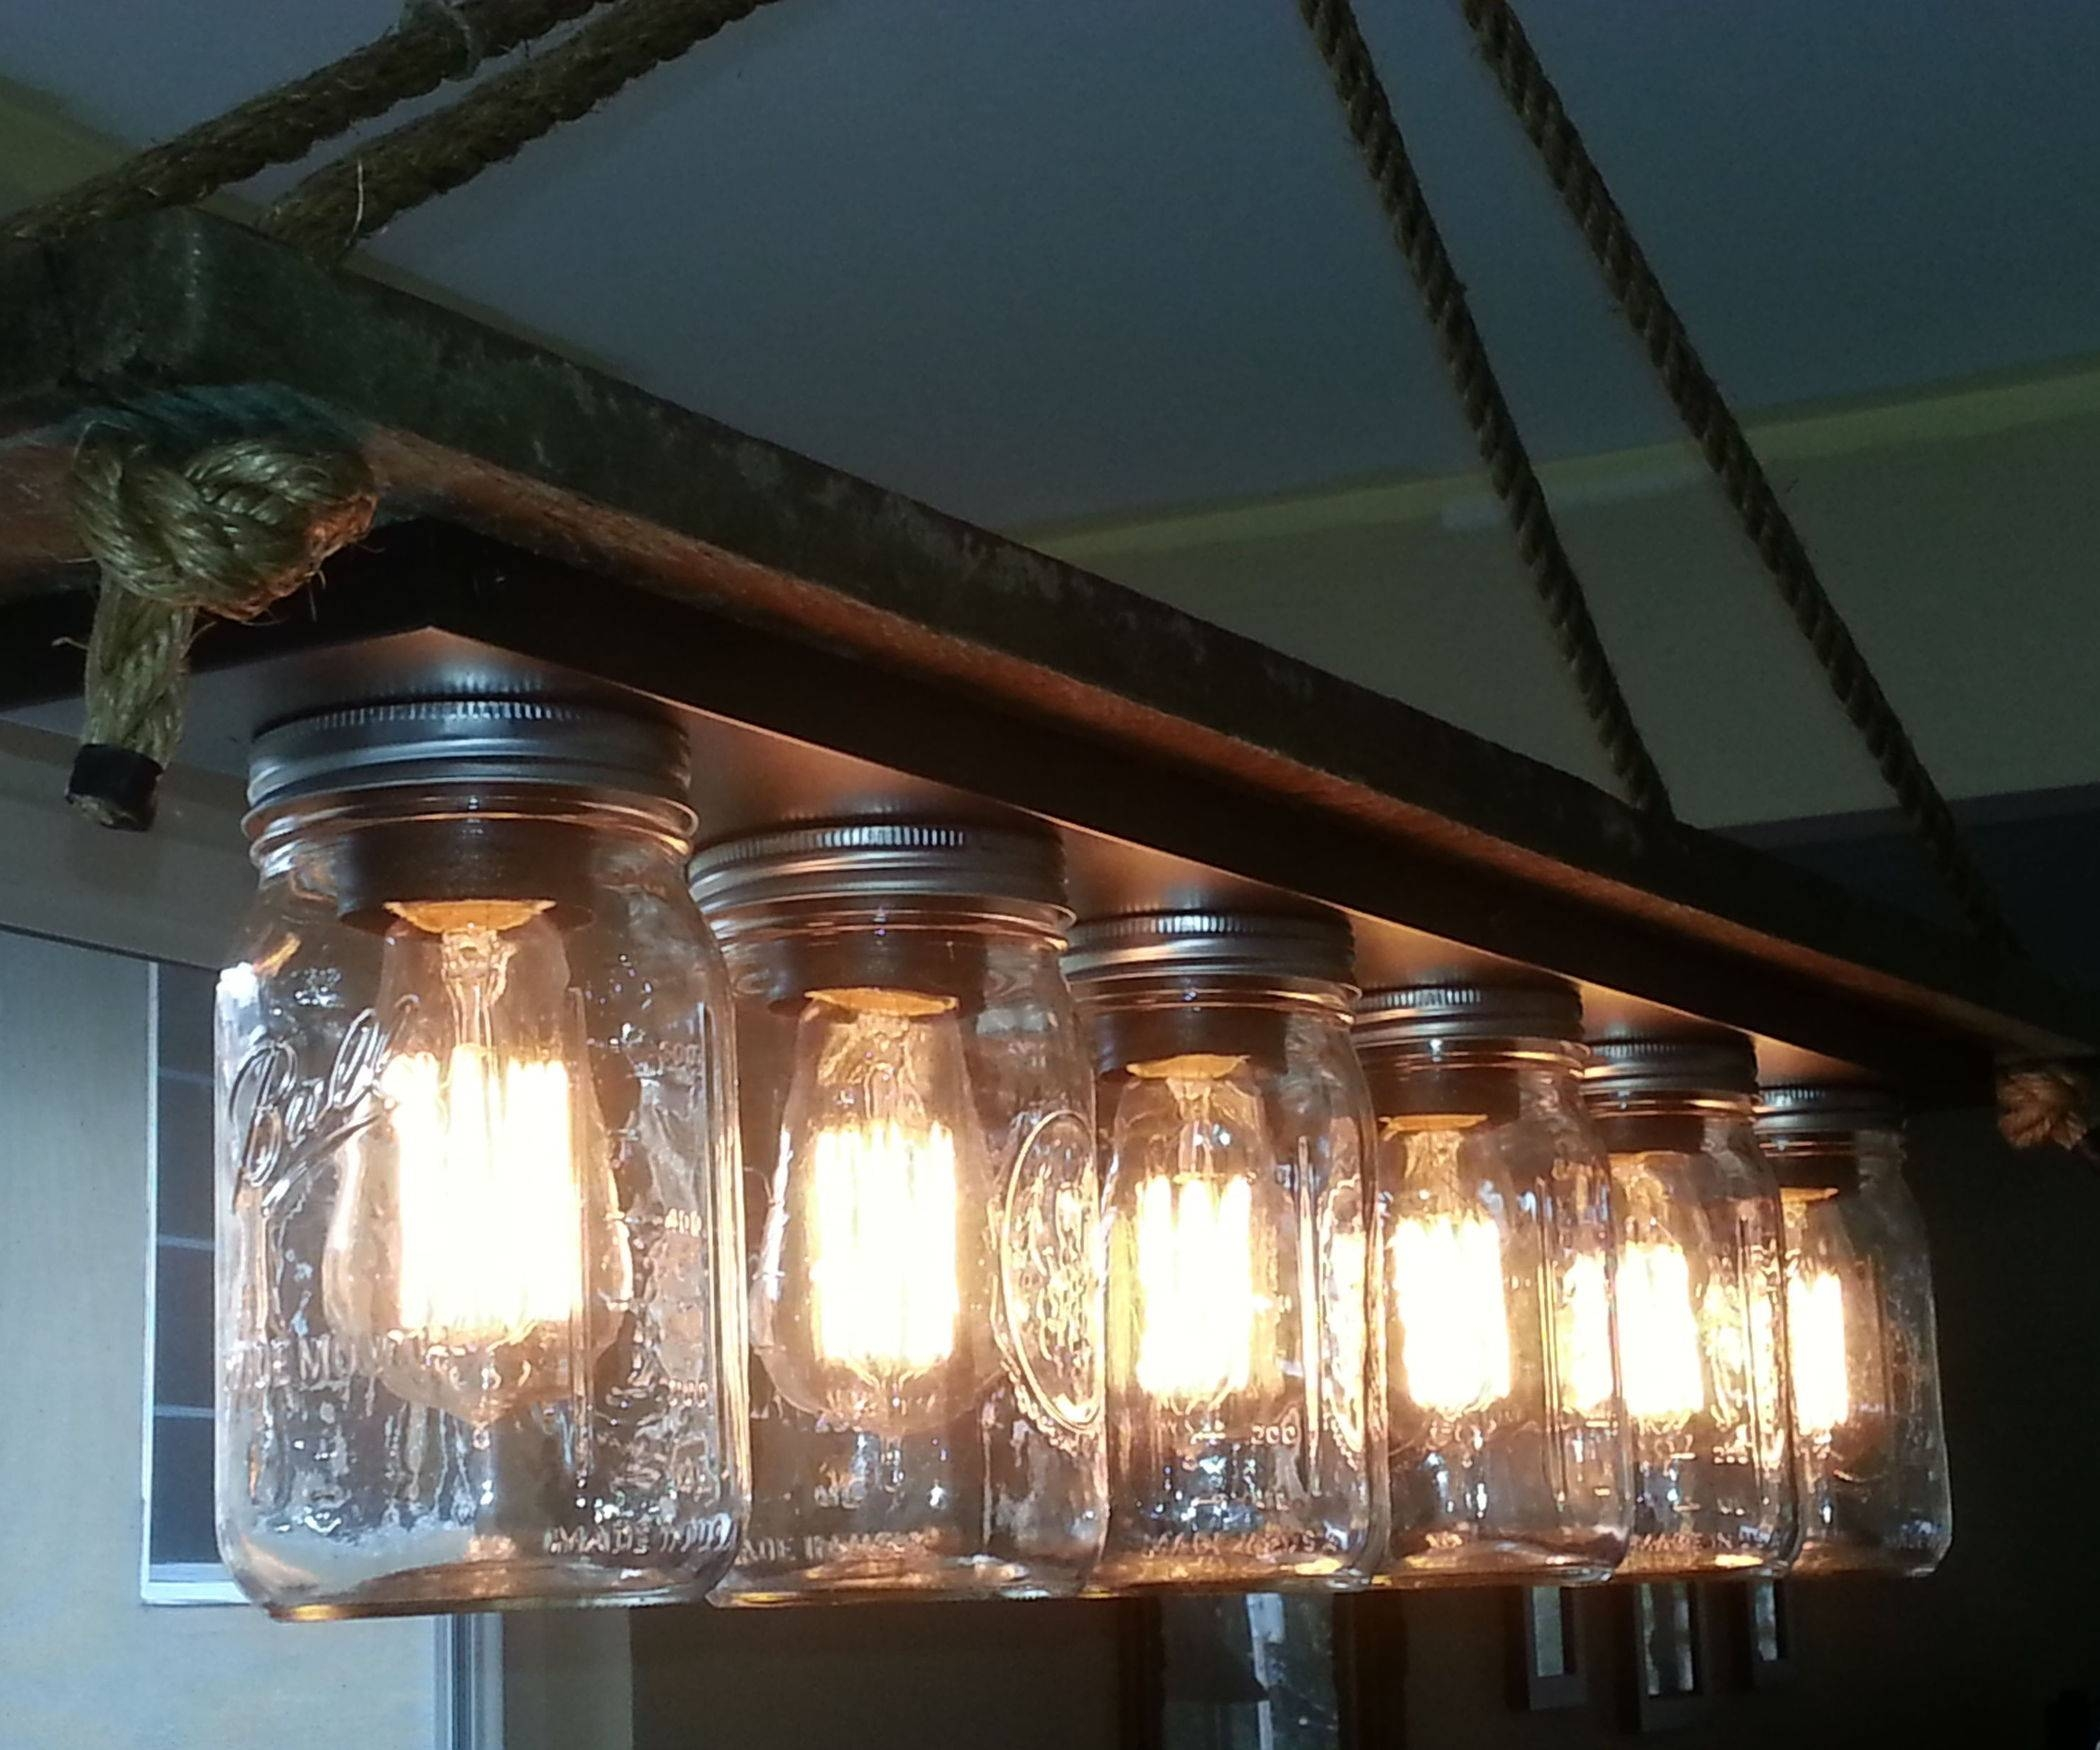 Mason Jar 6 Light Edison Hanging Lamp: 7 Steps (With Pictures) regarding Mason Jar Pendant Lights for Sale (Image 4 of 15)